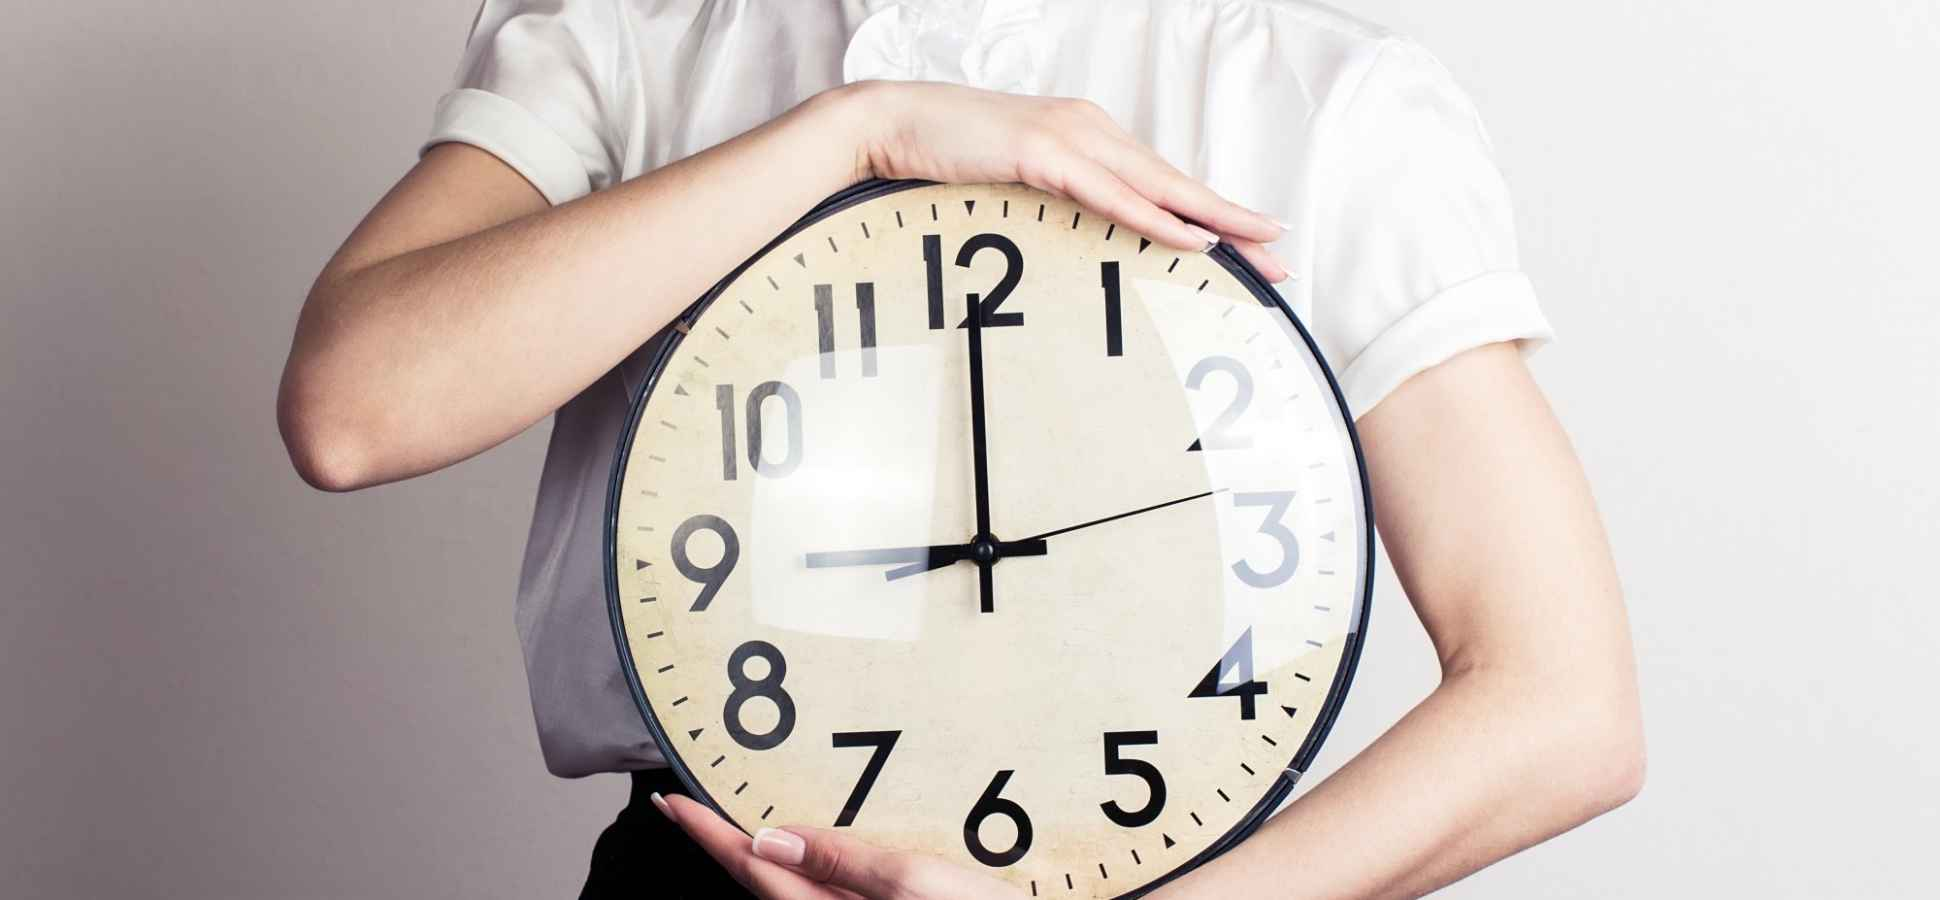 5 Life Hacks that Will Save You 10 Hours a Week